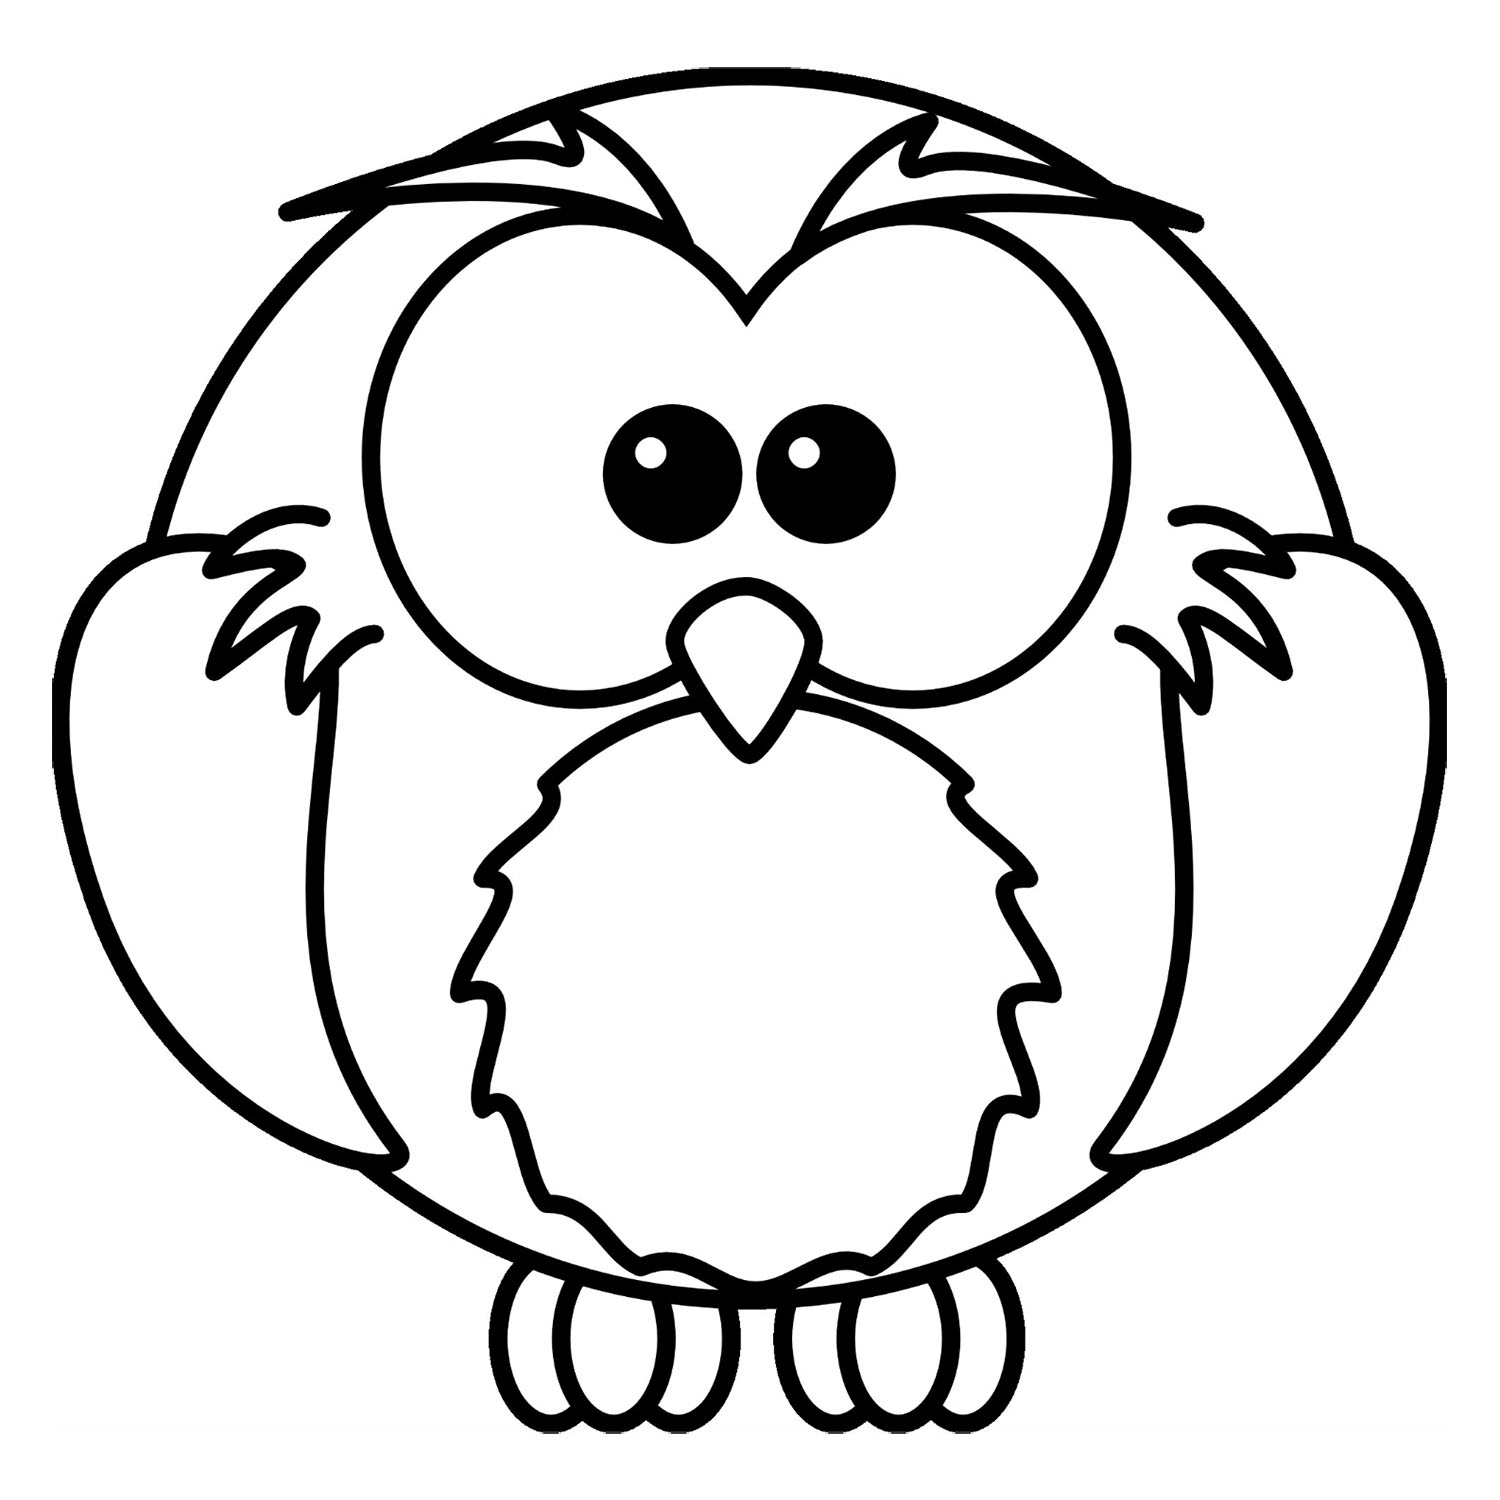 coloring pages for kids birds birds free to color for children birds kids coloring pages for pages kids coloring birds